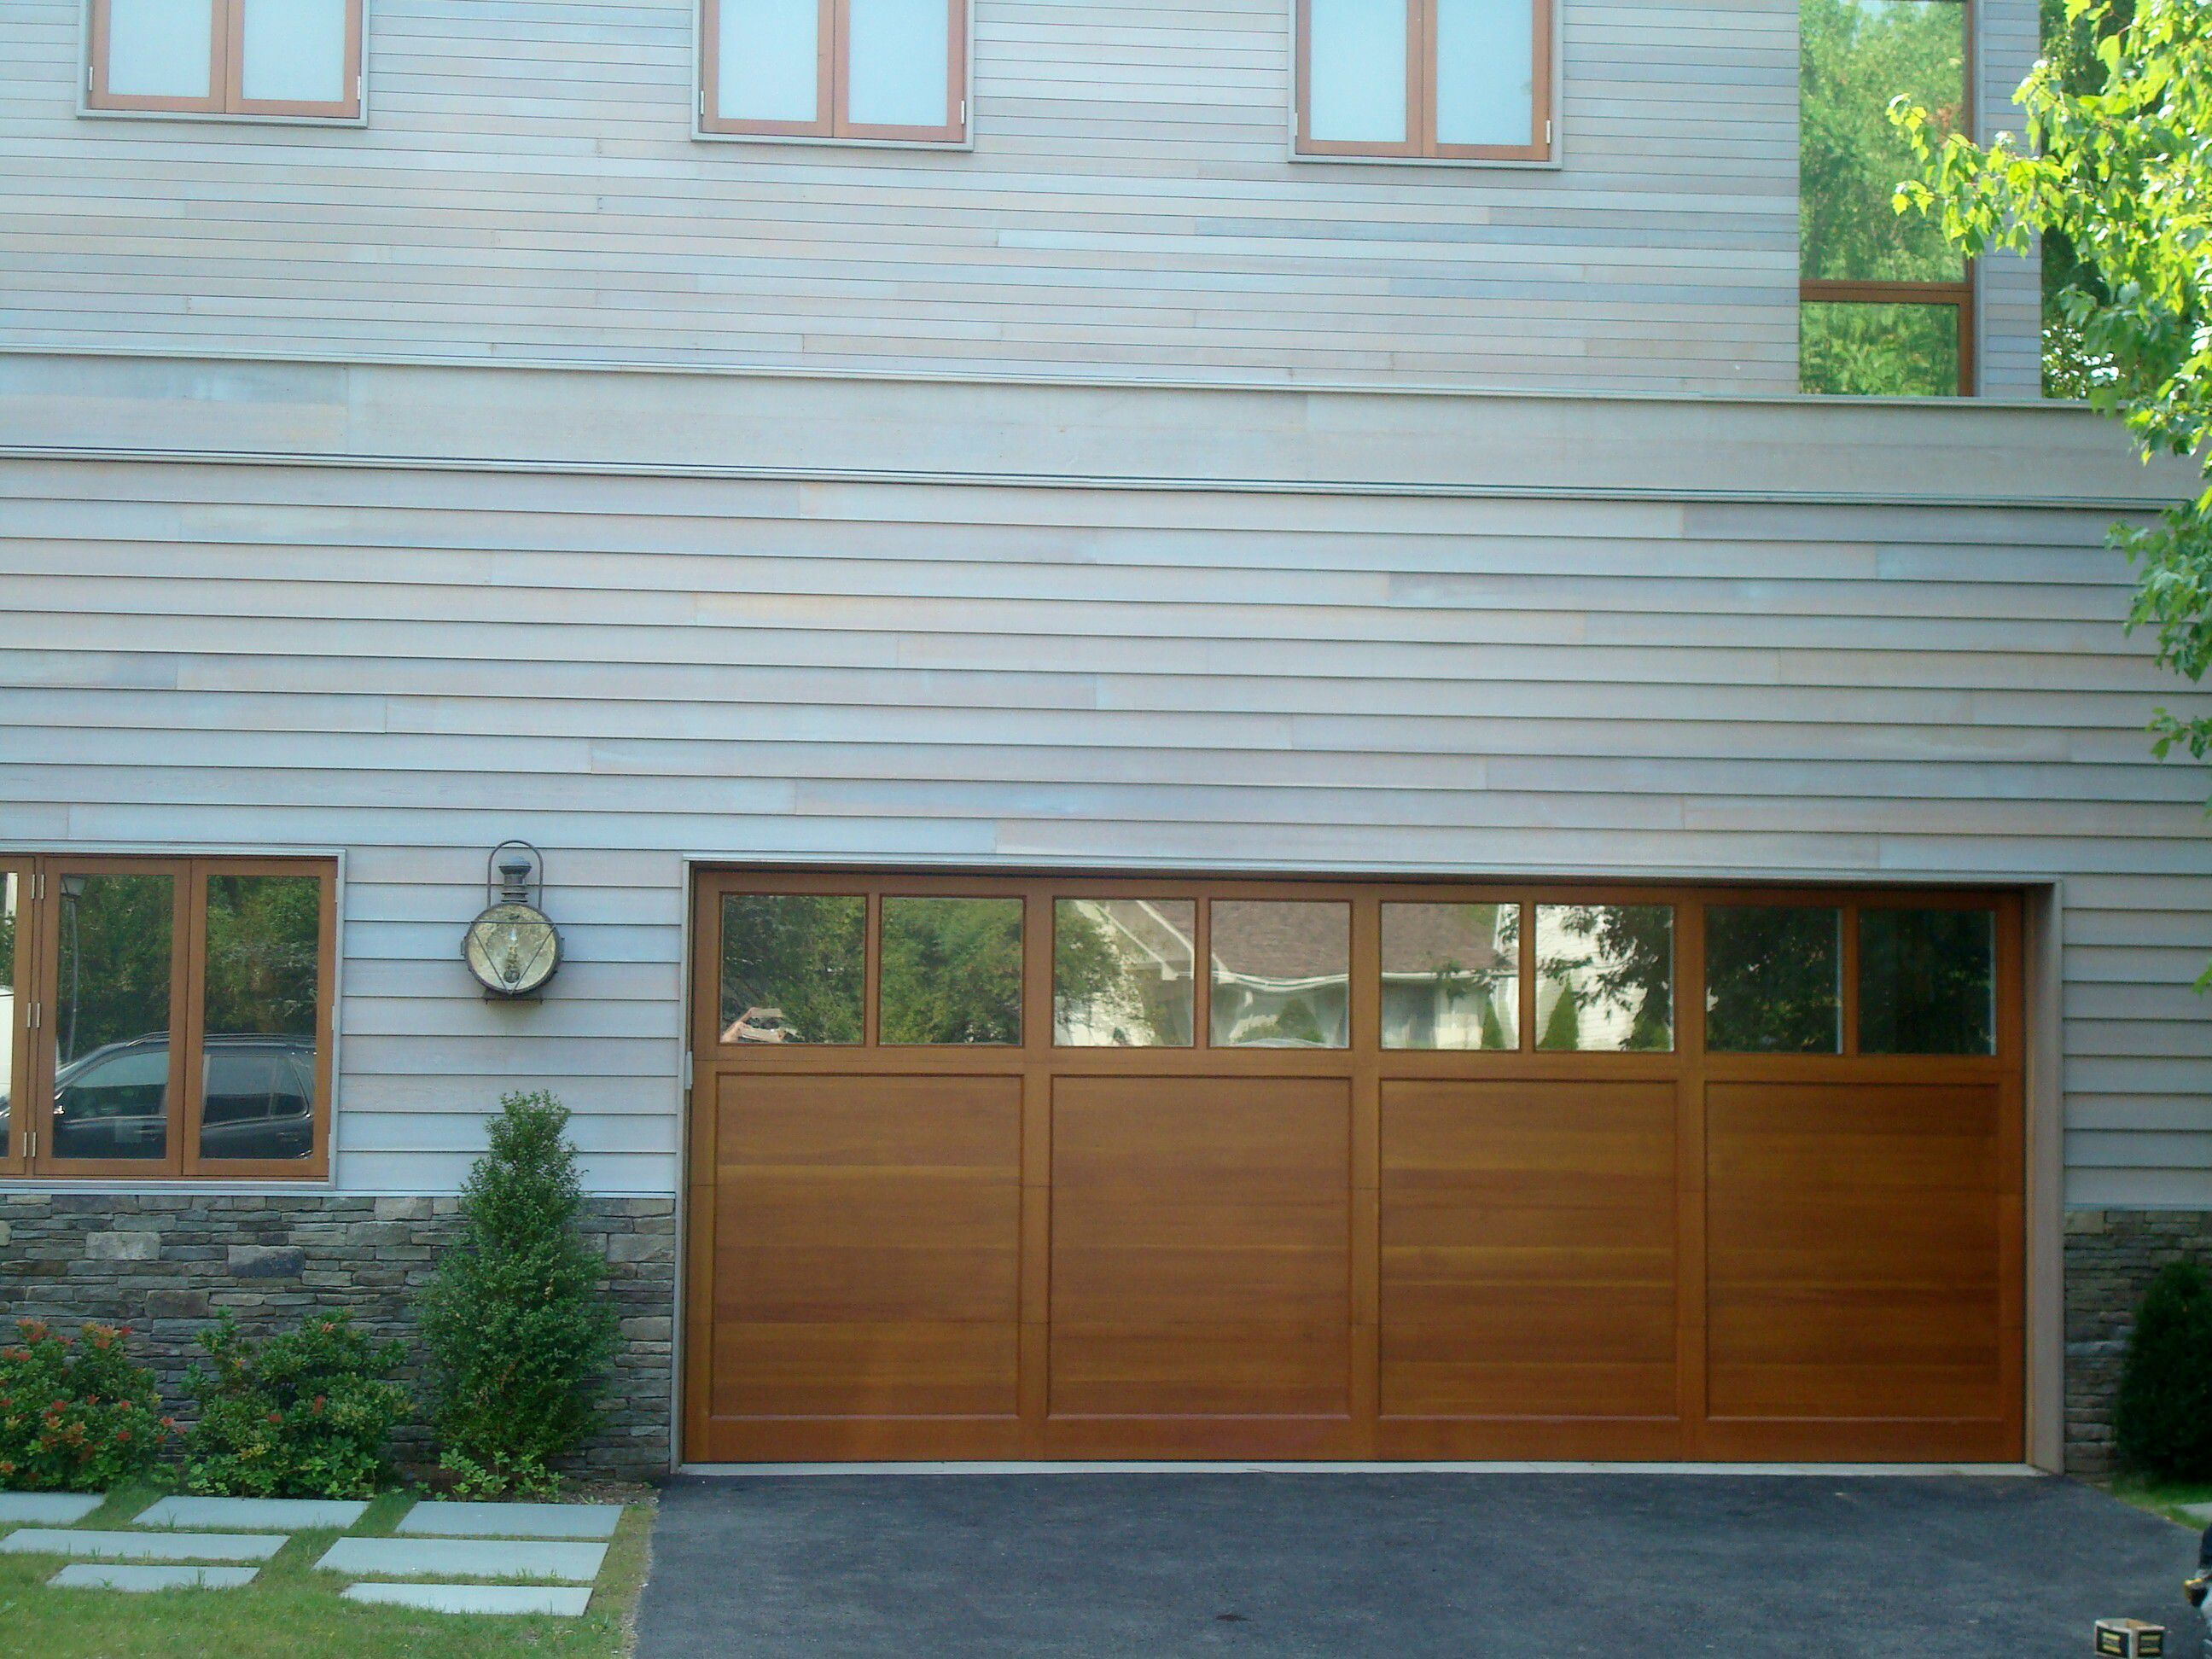 sliding interior phoenix ideas home design service about remodel doors with stylish glass repair garage door